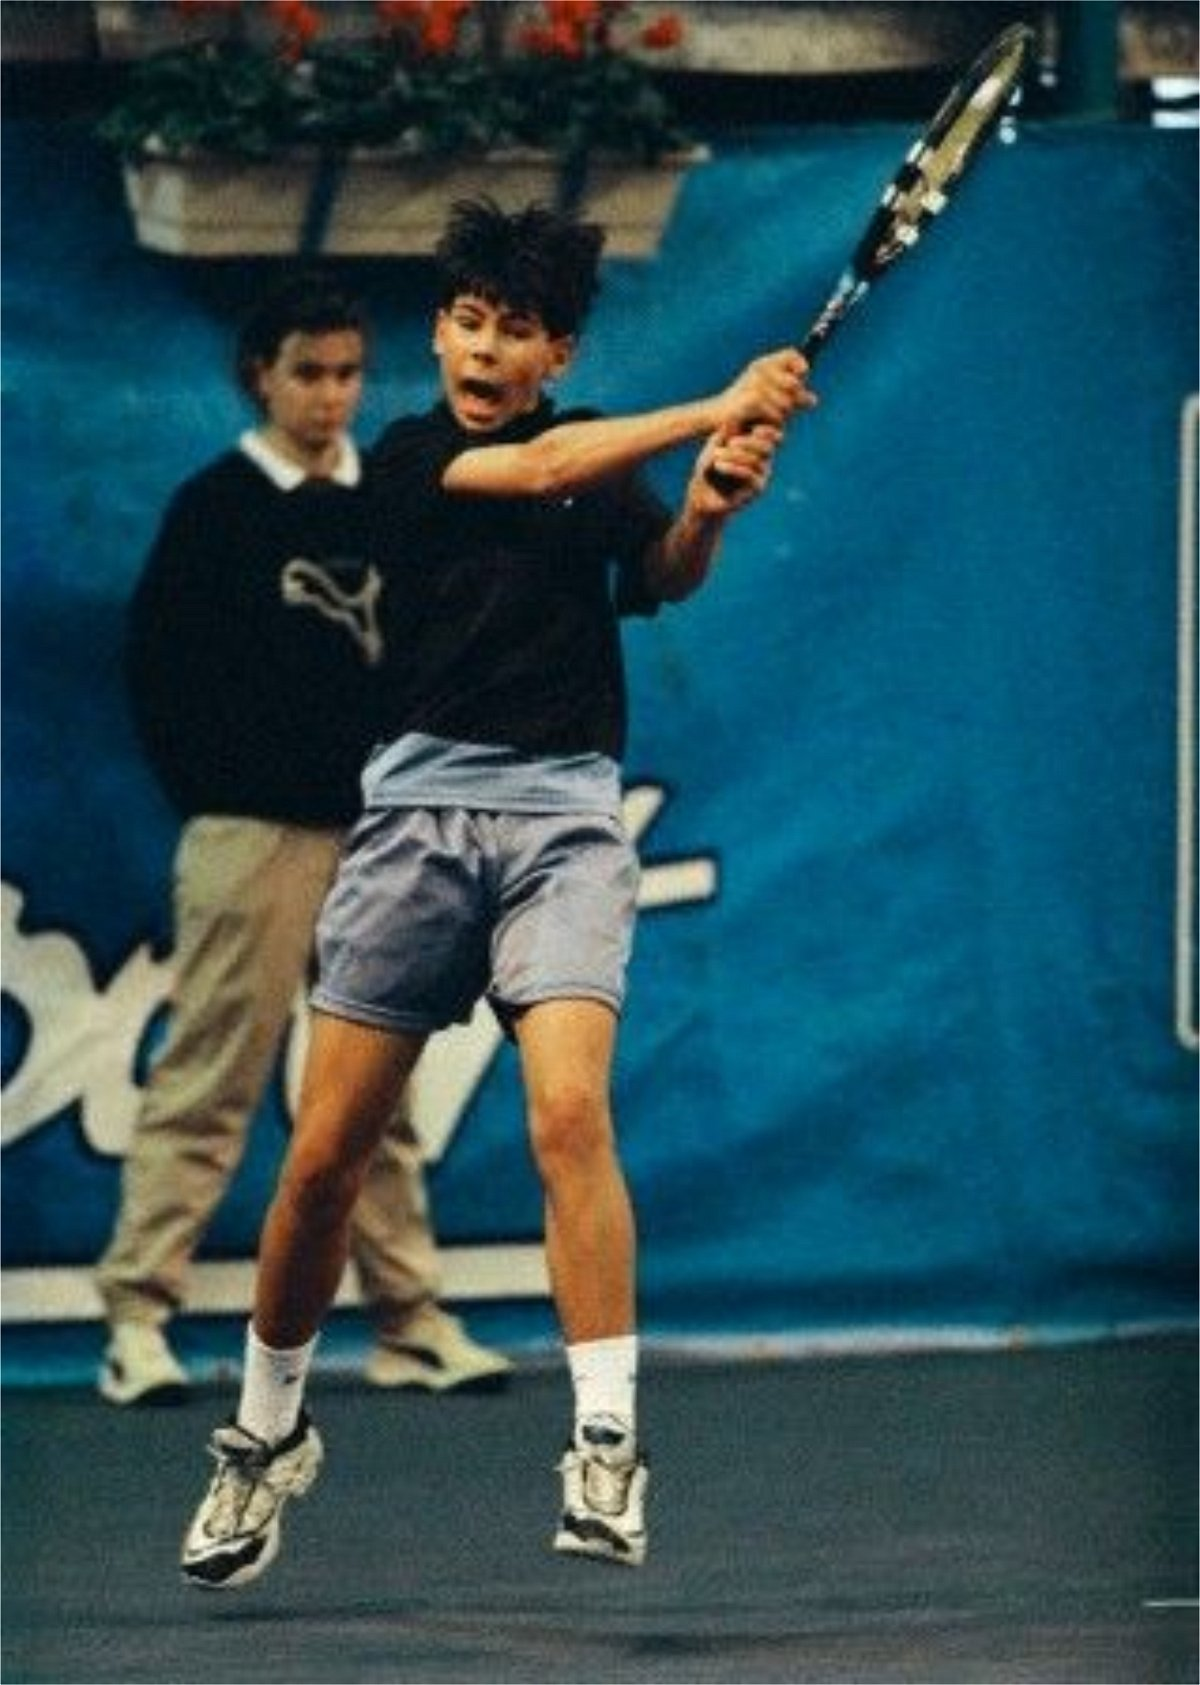 Rafael Nadal Reveals Interesting Tour Opponents He Has Faced As A Kid Essentiallysports